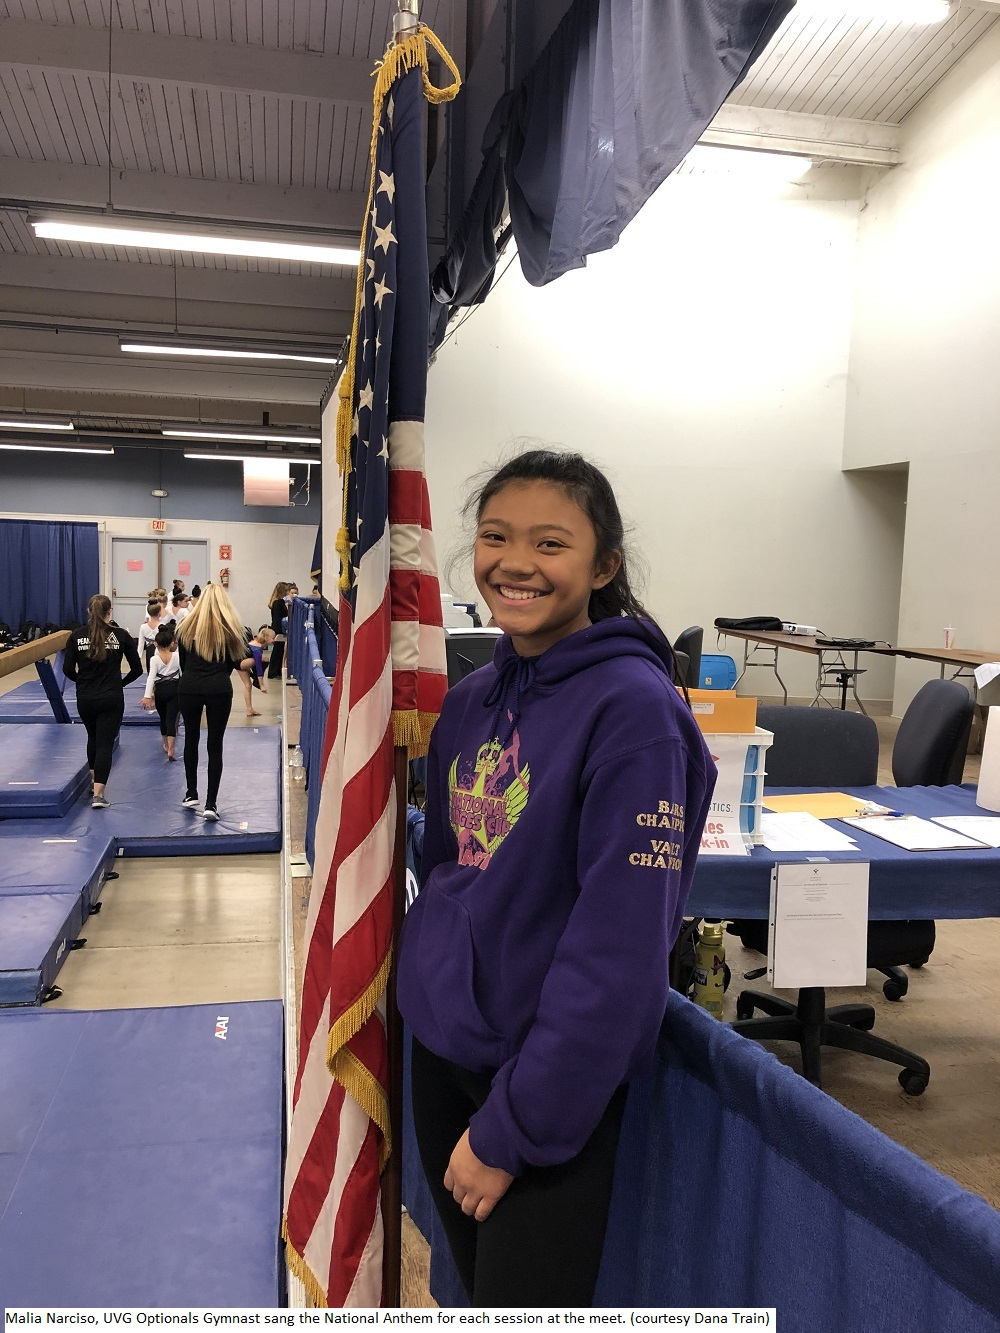 191109 Malia Narciso UVG Optionals Gymnast sang the National Anthem for each session at the meet